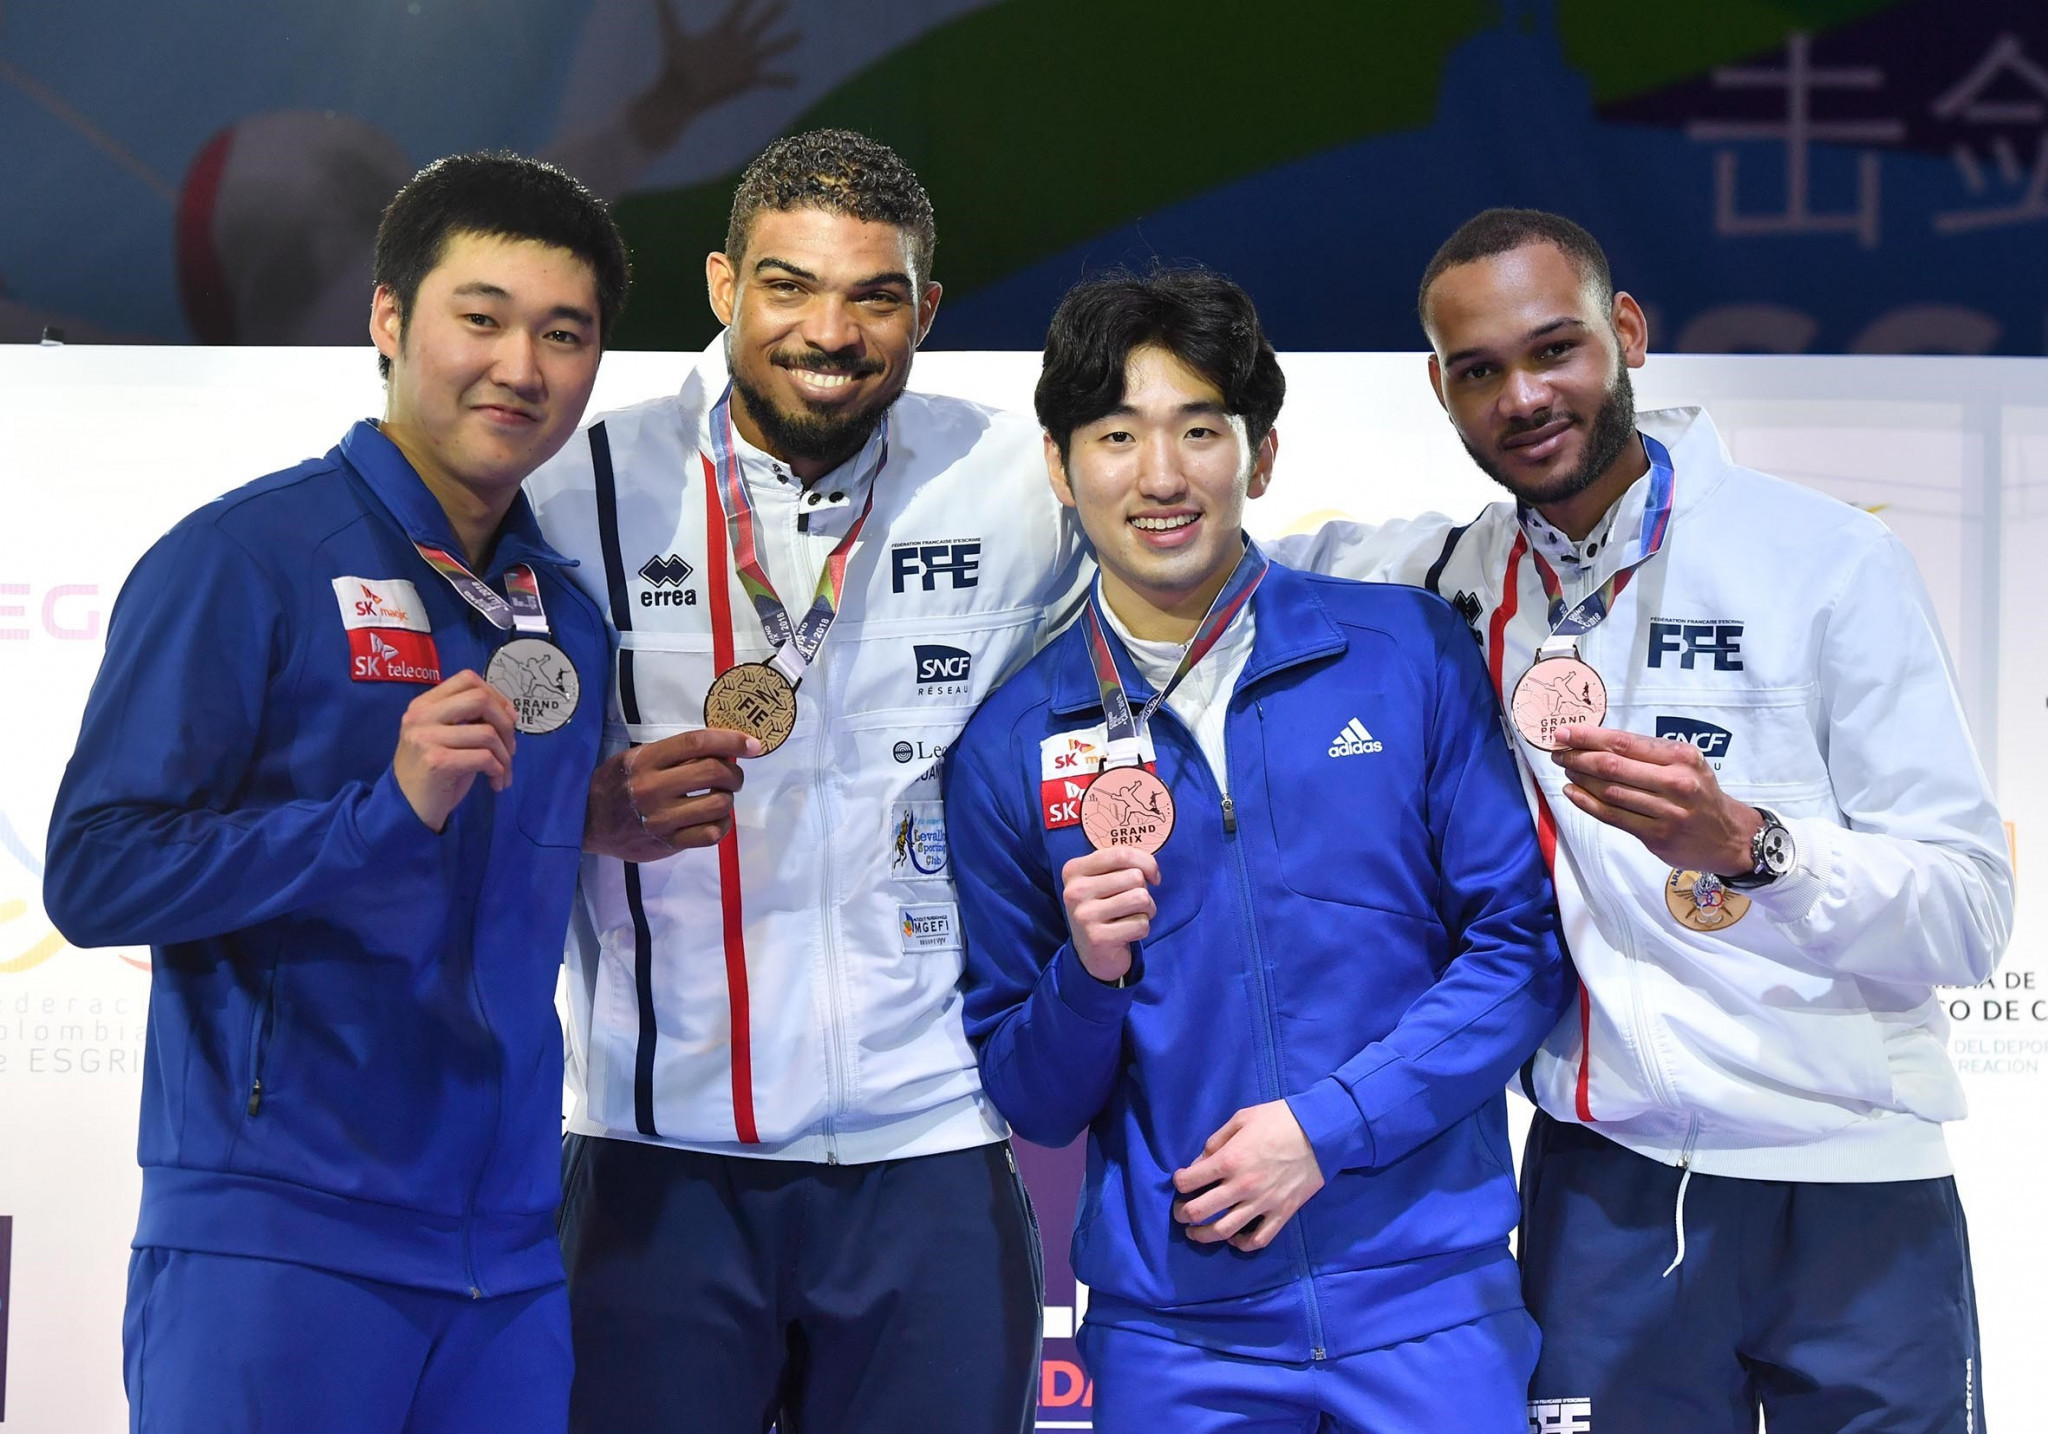 France's Borel claims second FIE Épée Grand Prix title with victory in Cali